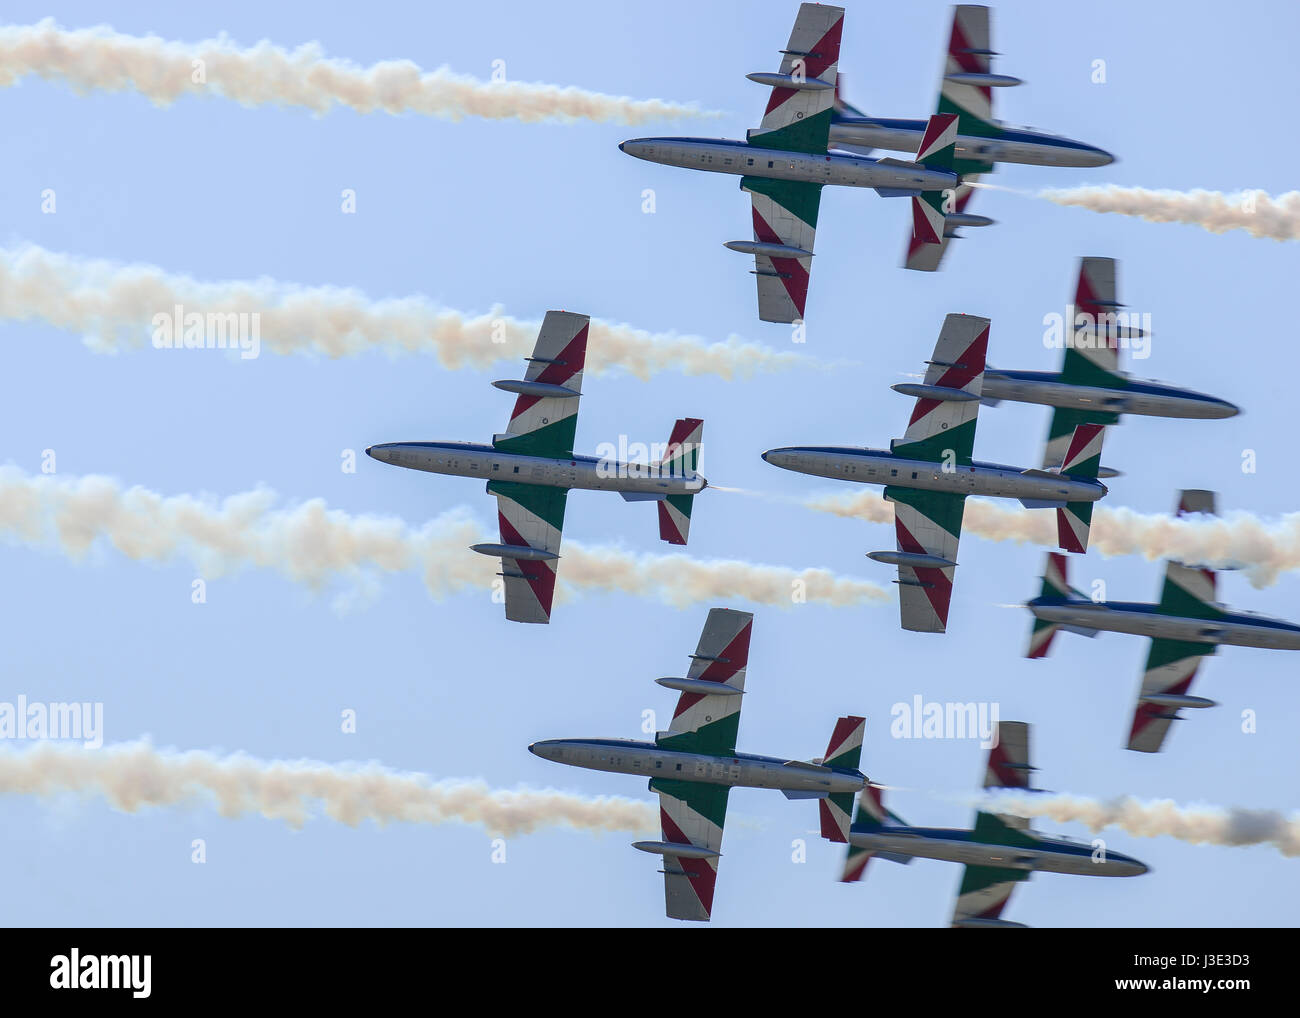 The Italian Air Force Frecce Tricolori aerial demonstration team aircraft fly in formation over the Aviano Air Base - Stock Image